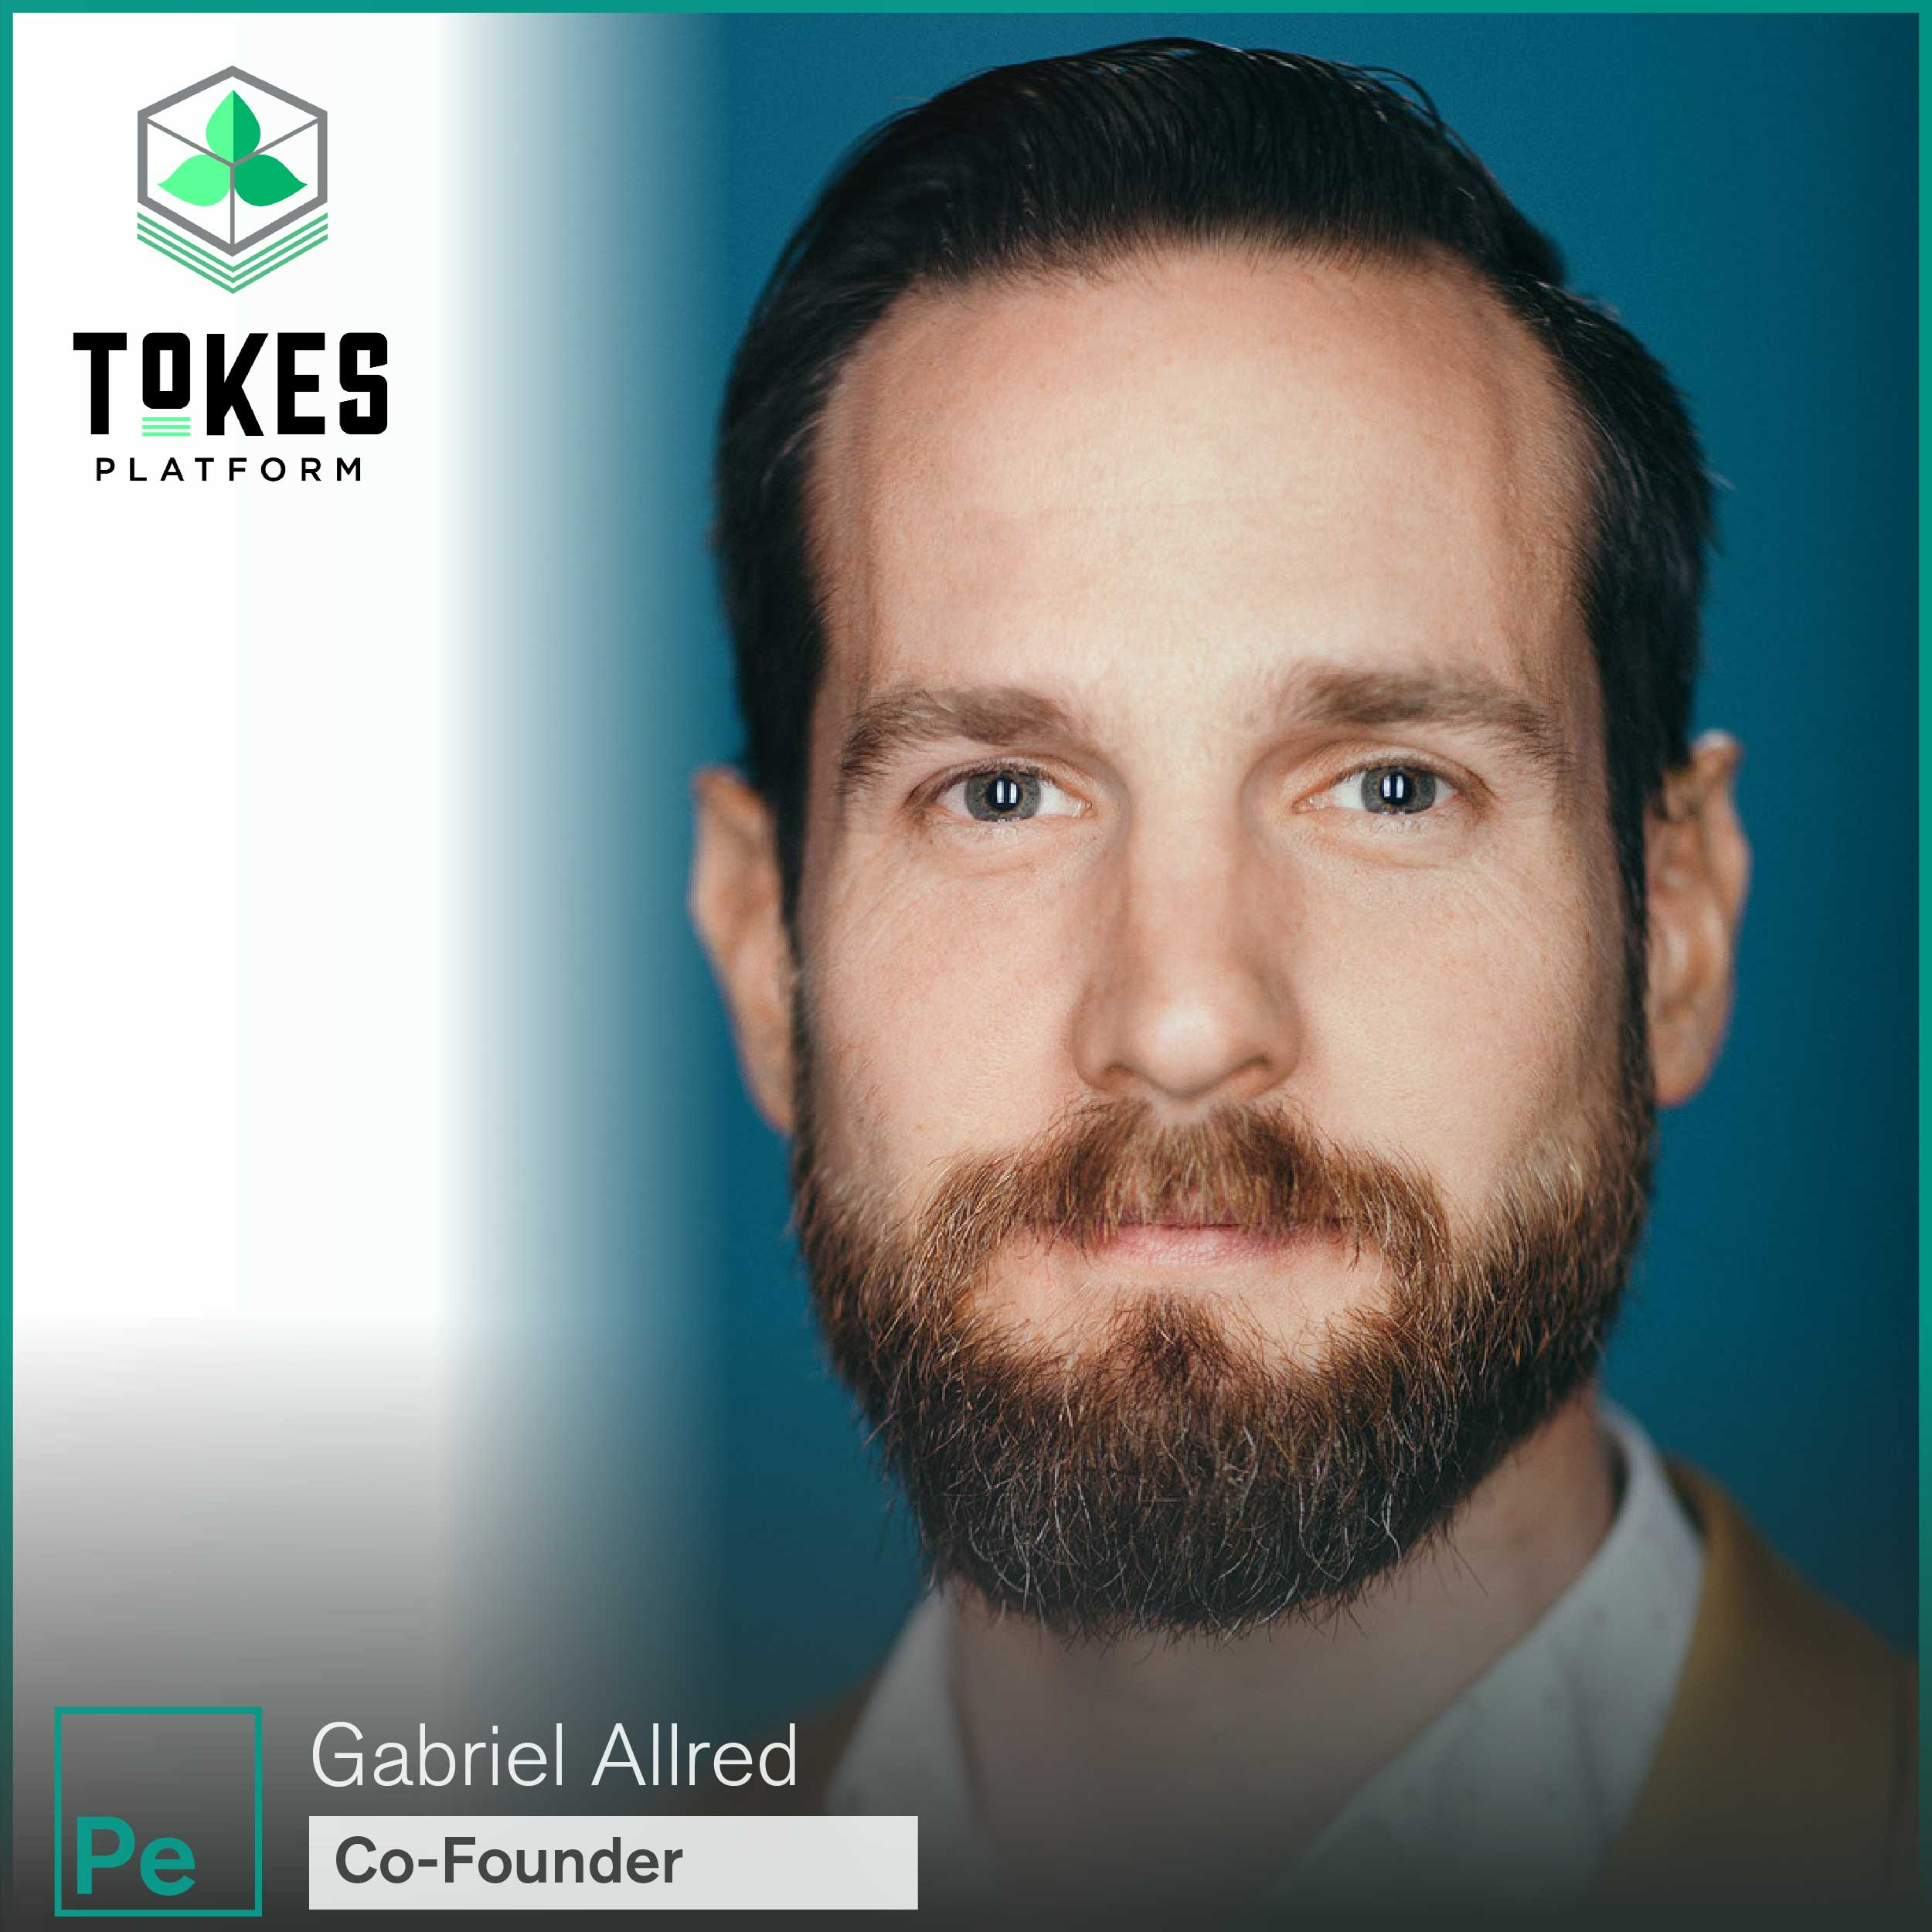 Gabriel Allred, Co-Founder of Tokes Platform, a crypto currency and blockchain company for the cannabis industry